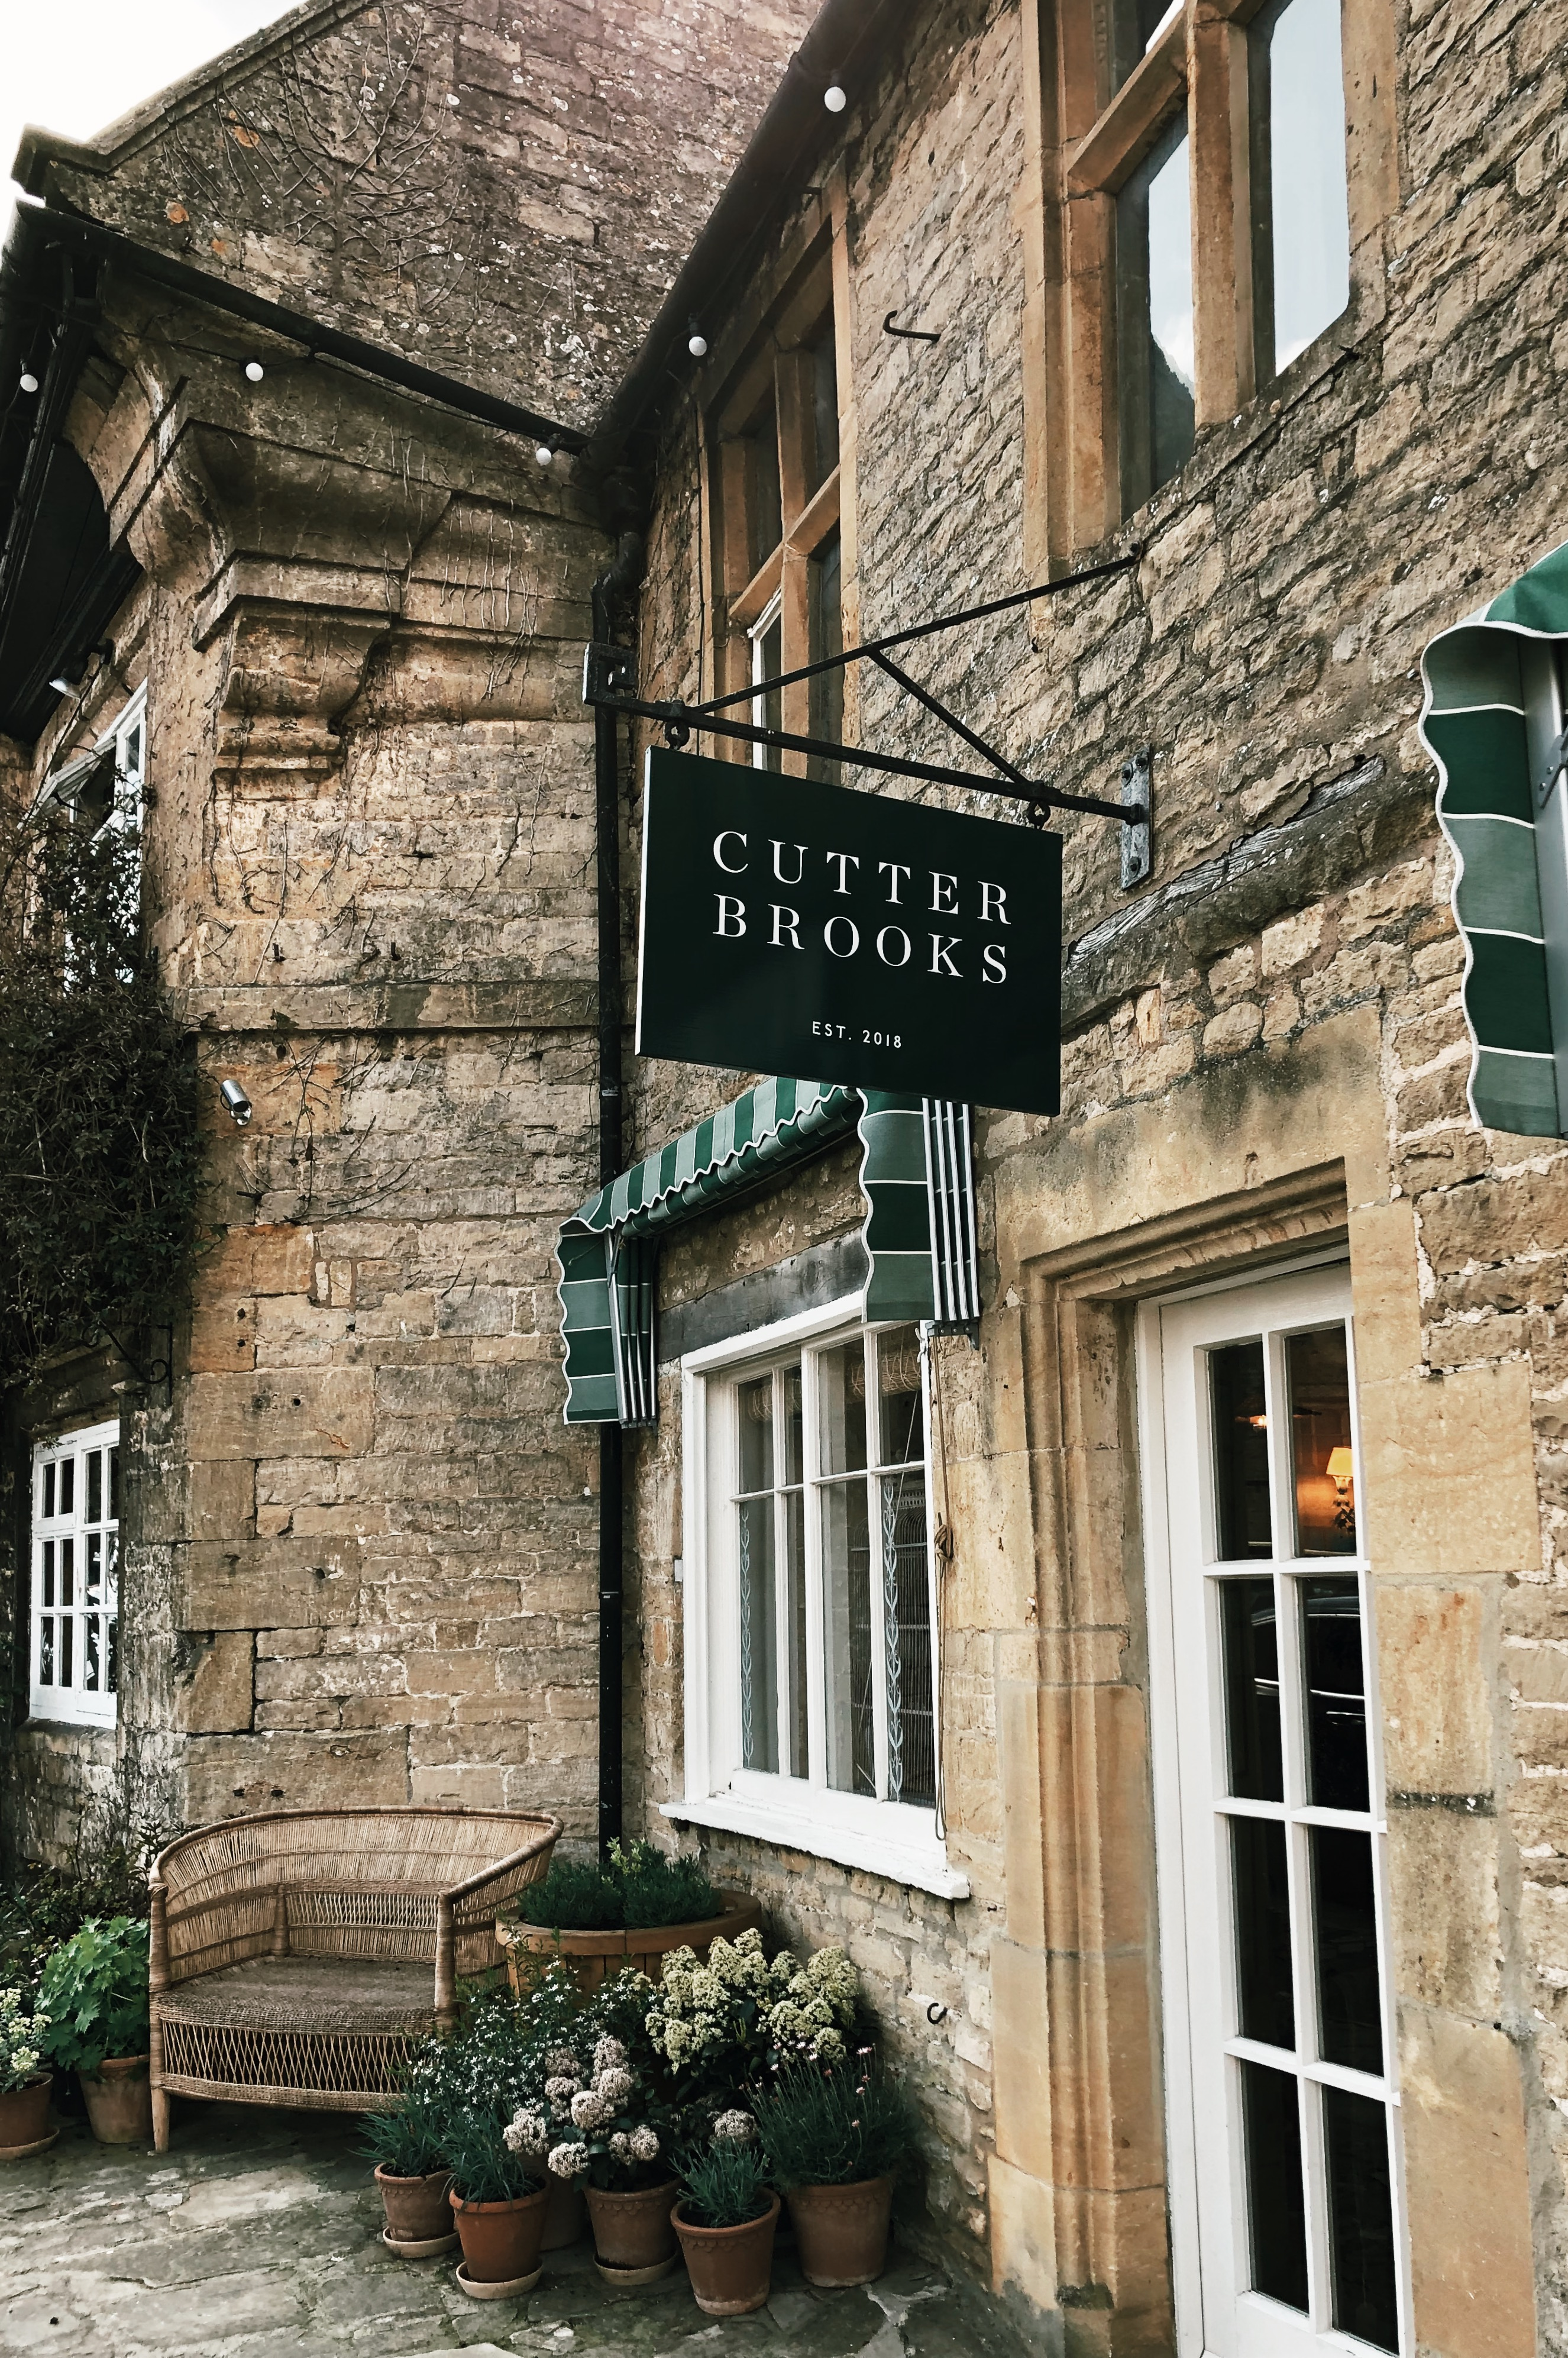 Cutter Brooks: The Best Shop in the Cotswolds